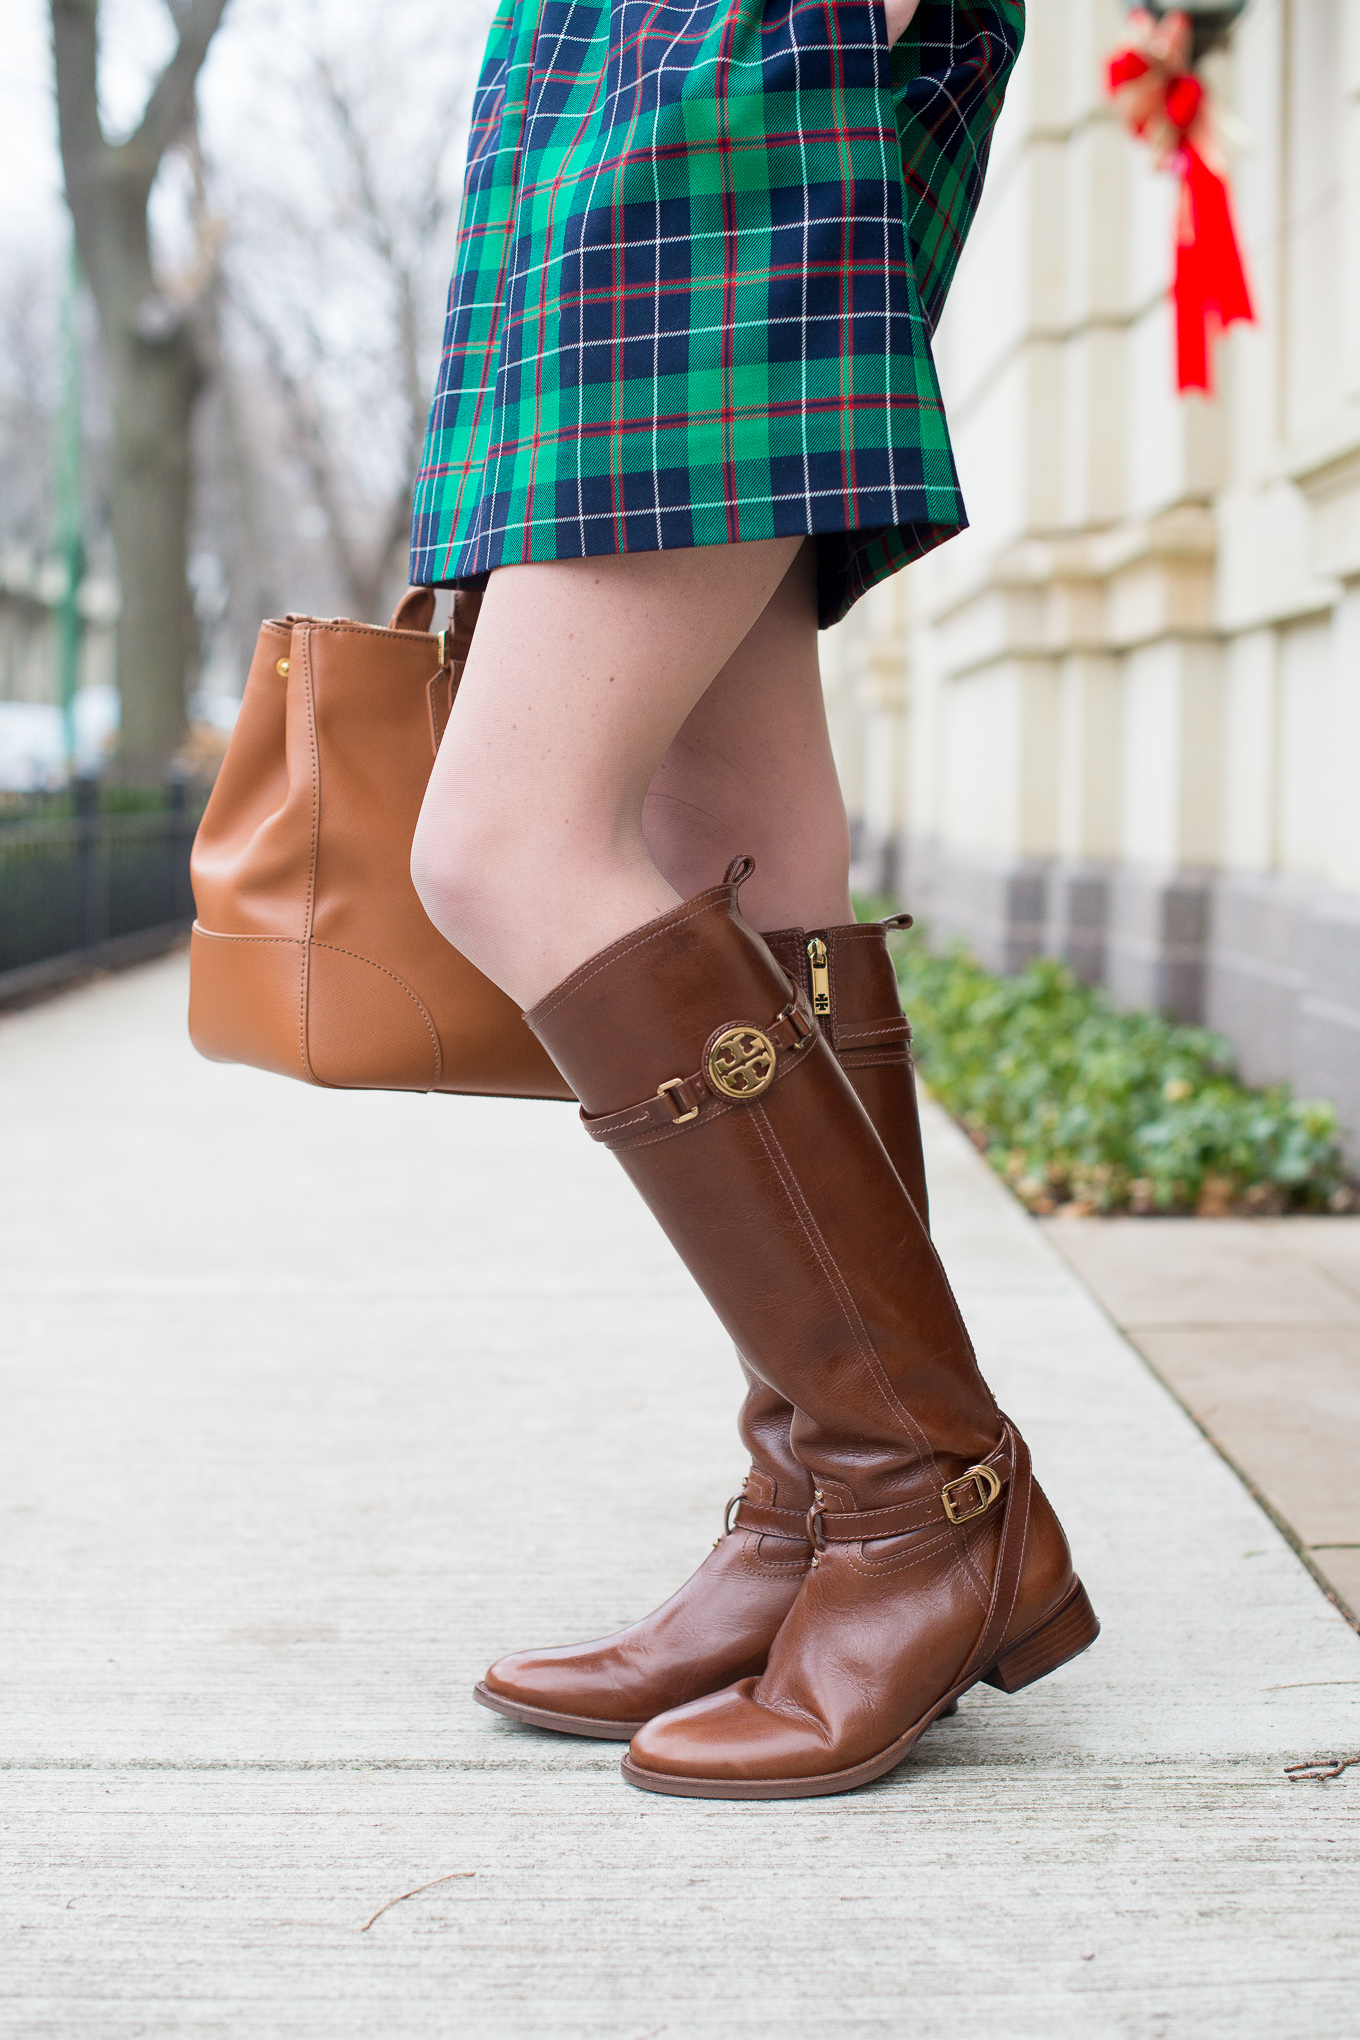 Tory Burch Riding Boots-18